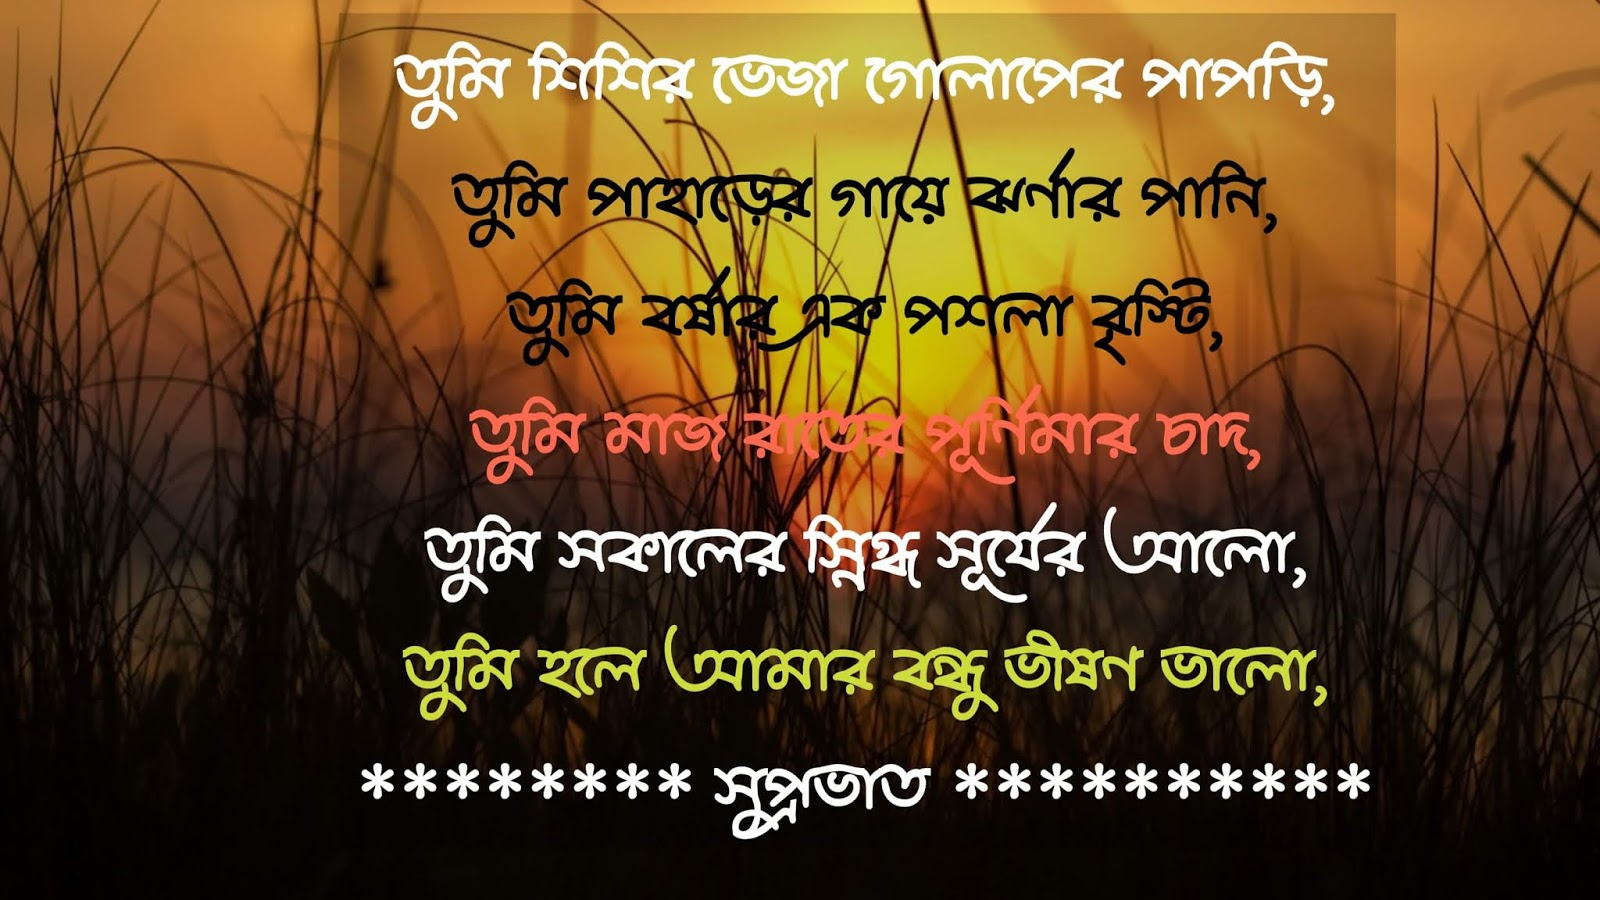 good morning image bengali language